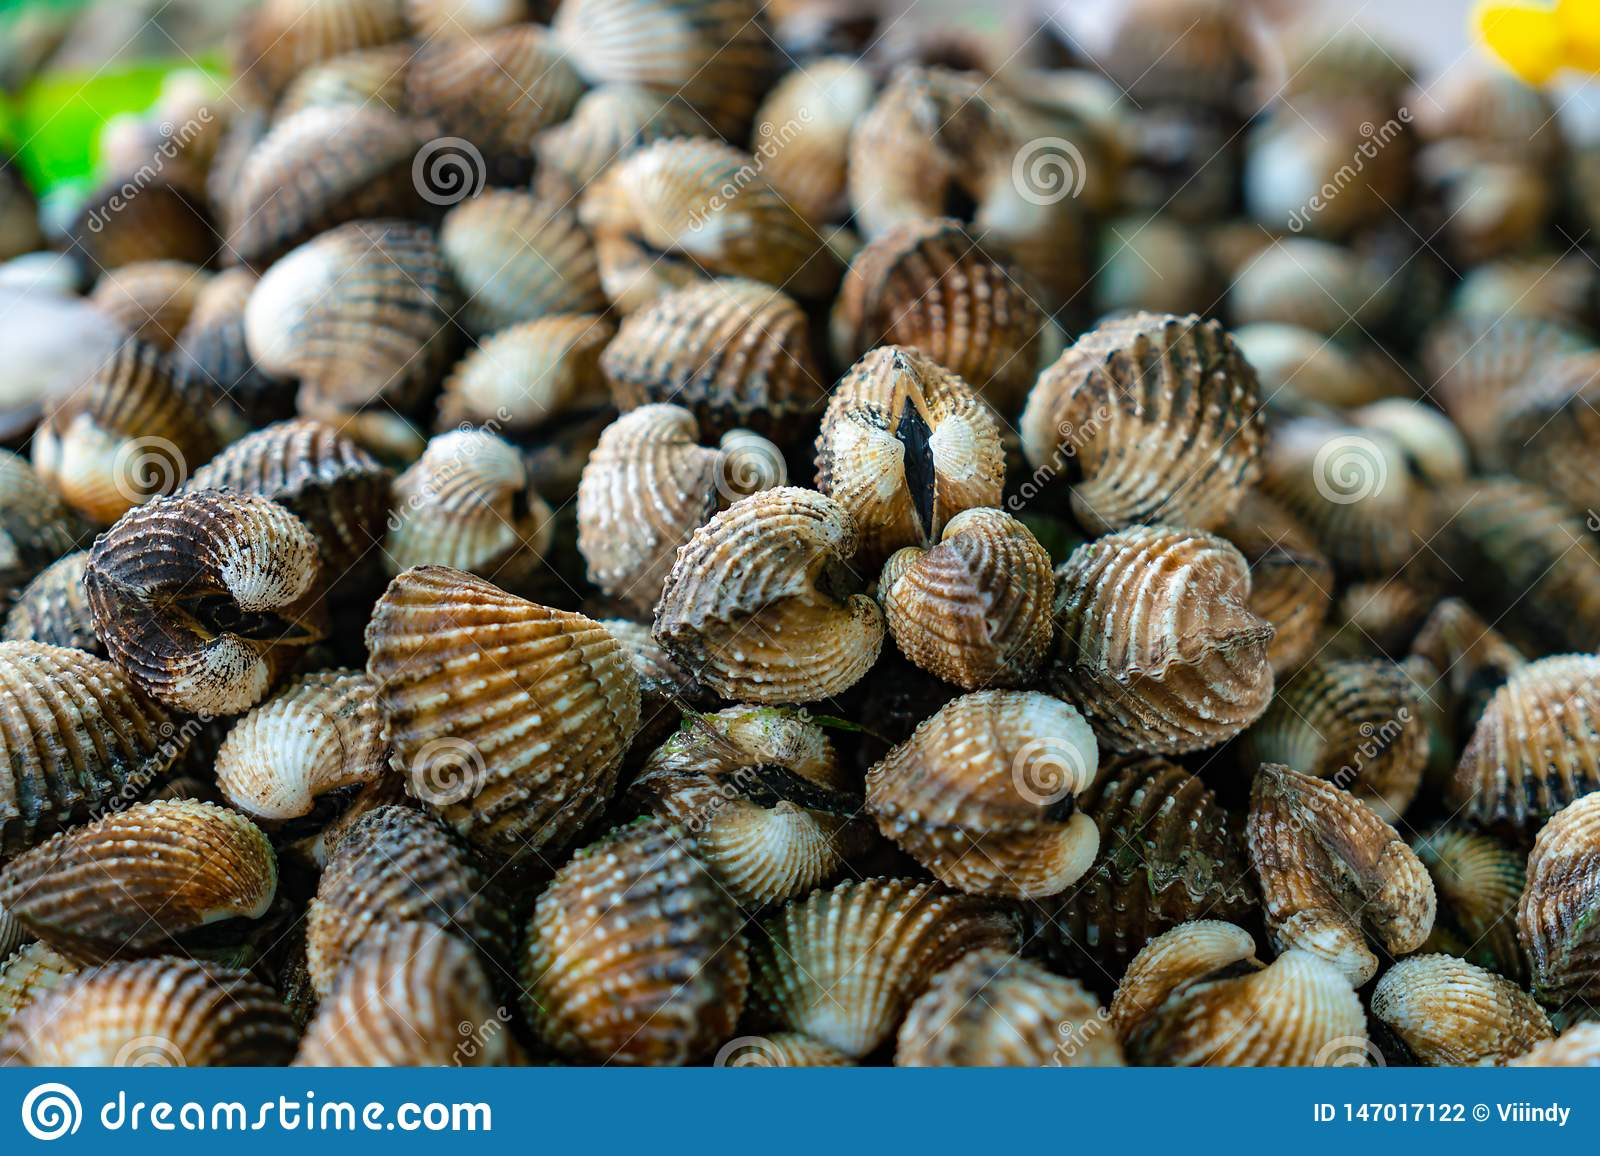 Many clean fresh cockles are stacked together and made into seafood.